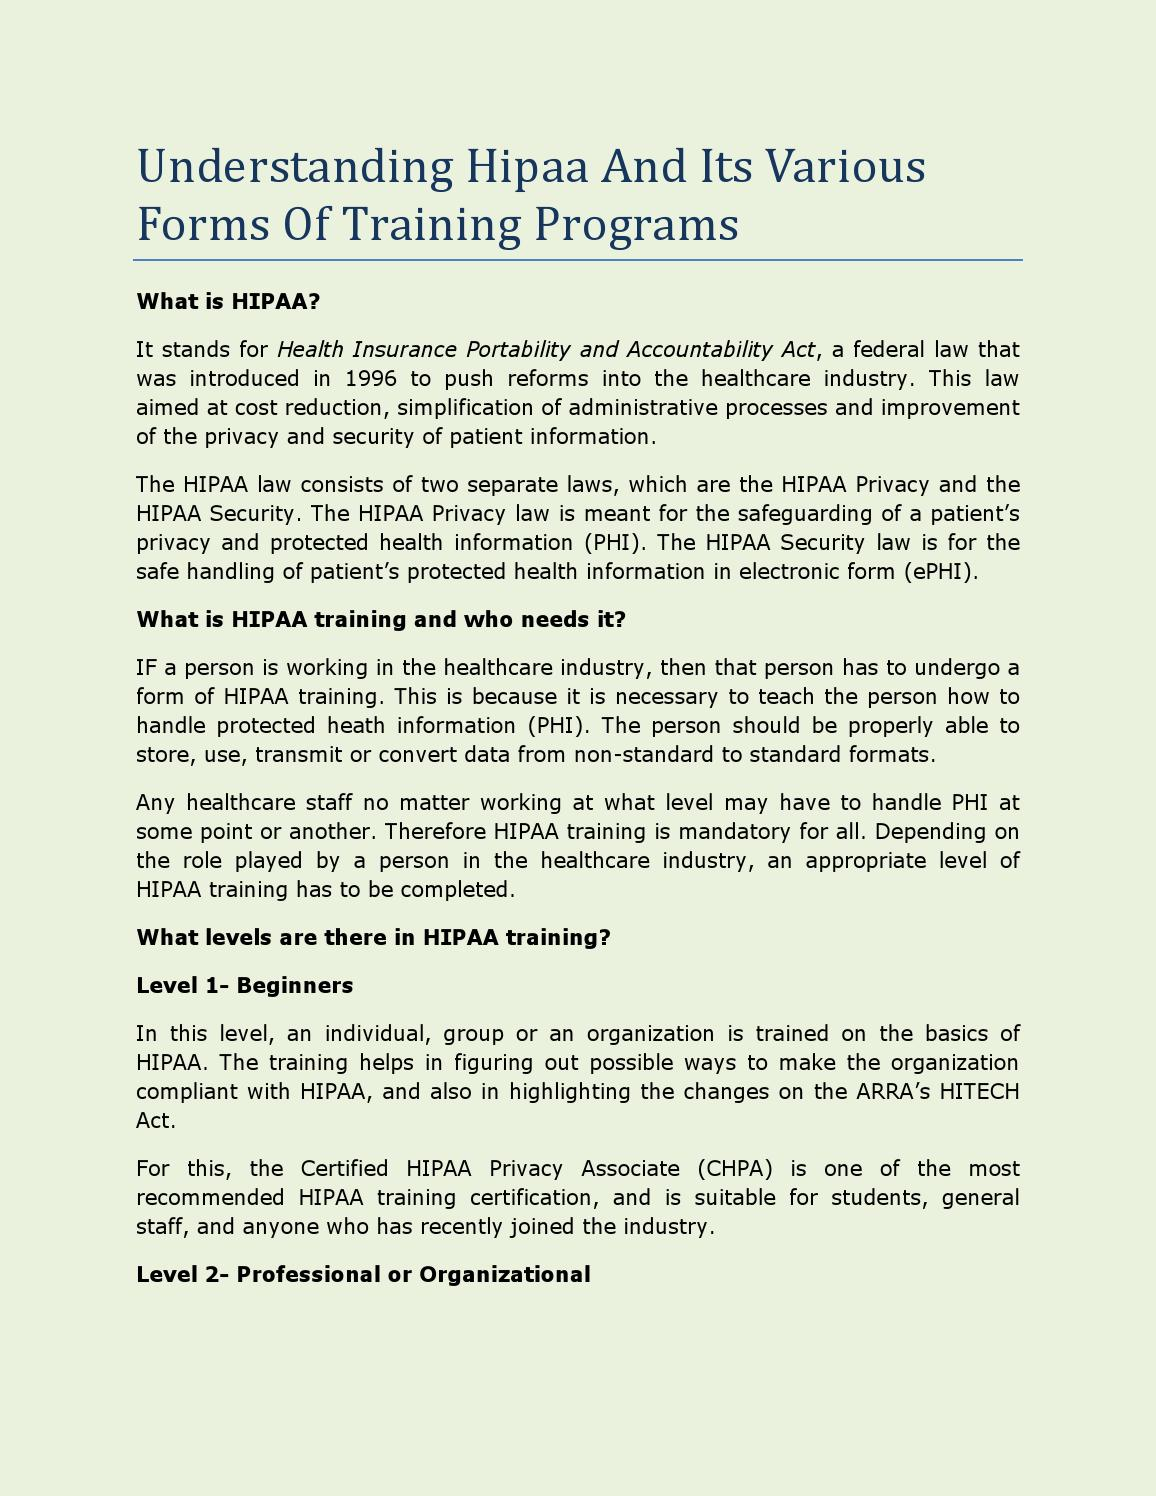 Understanding Hipaa And Its Various Forms Of Training Programs By